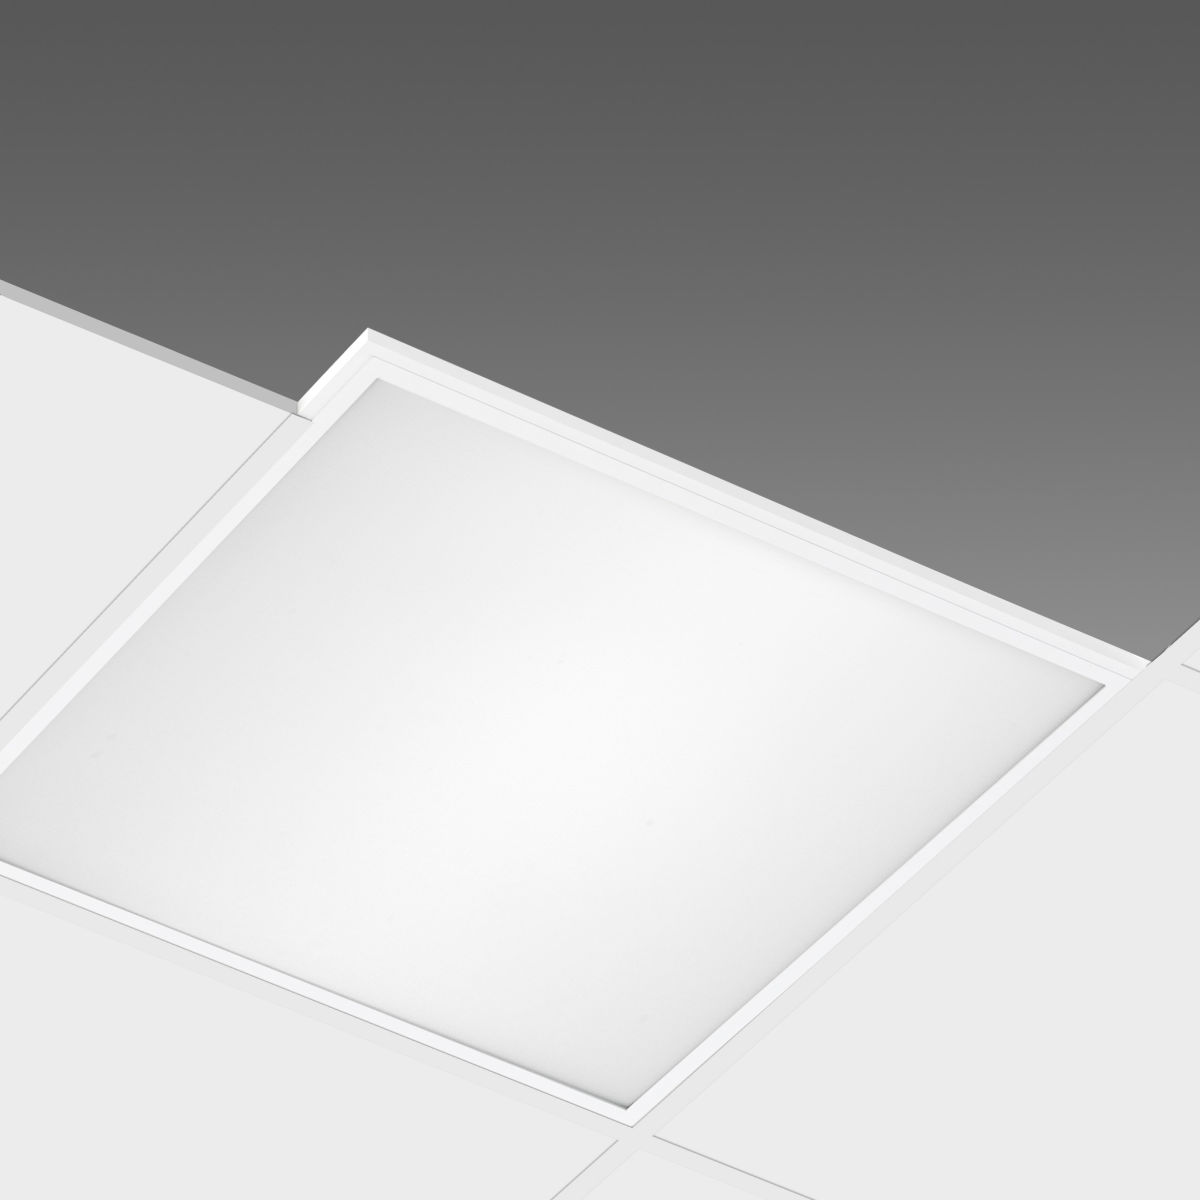 disano 15020500 pannello led 60x60 29w 4000k